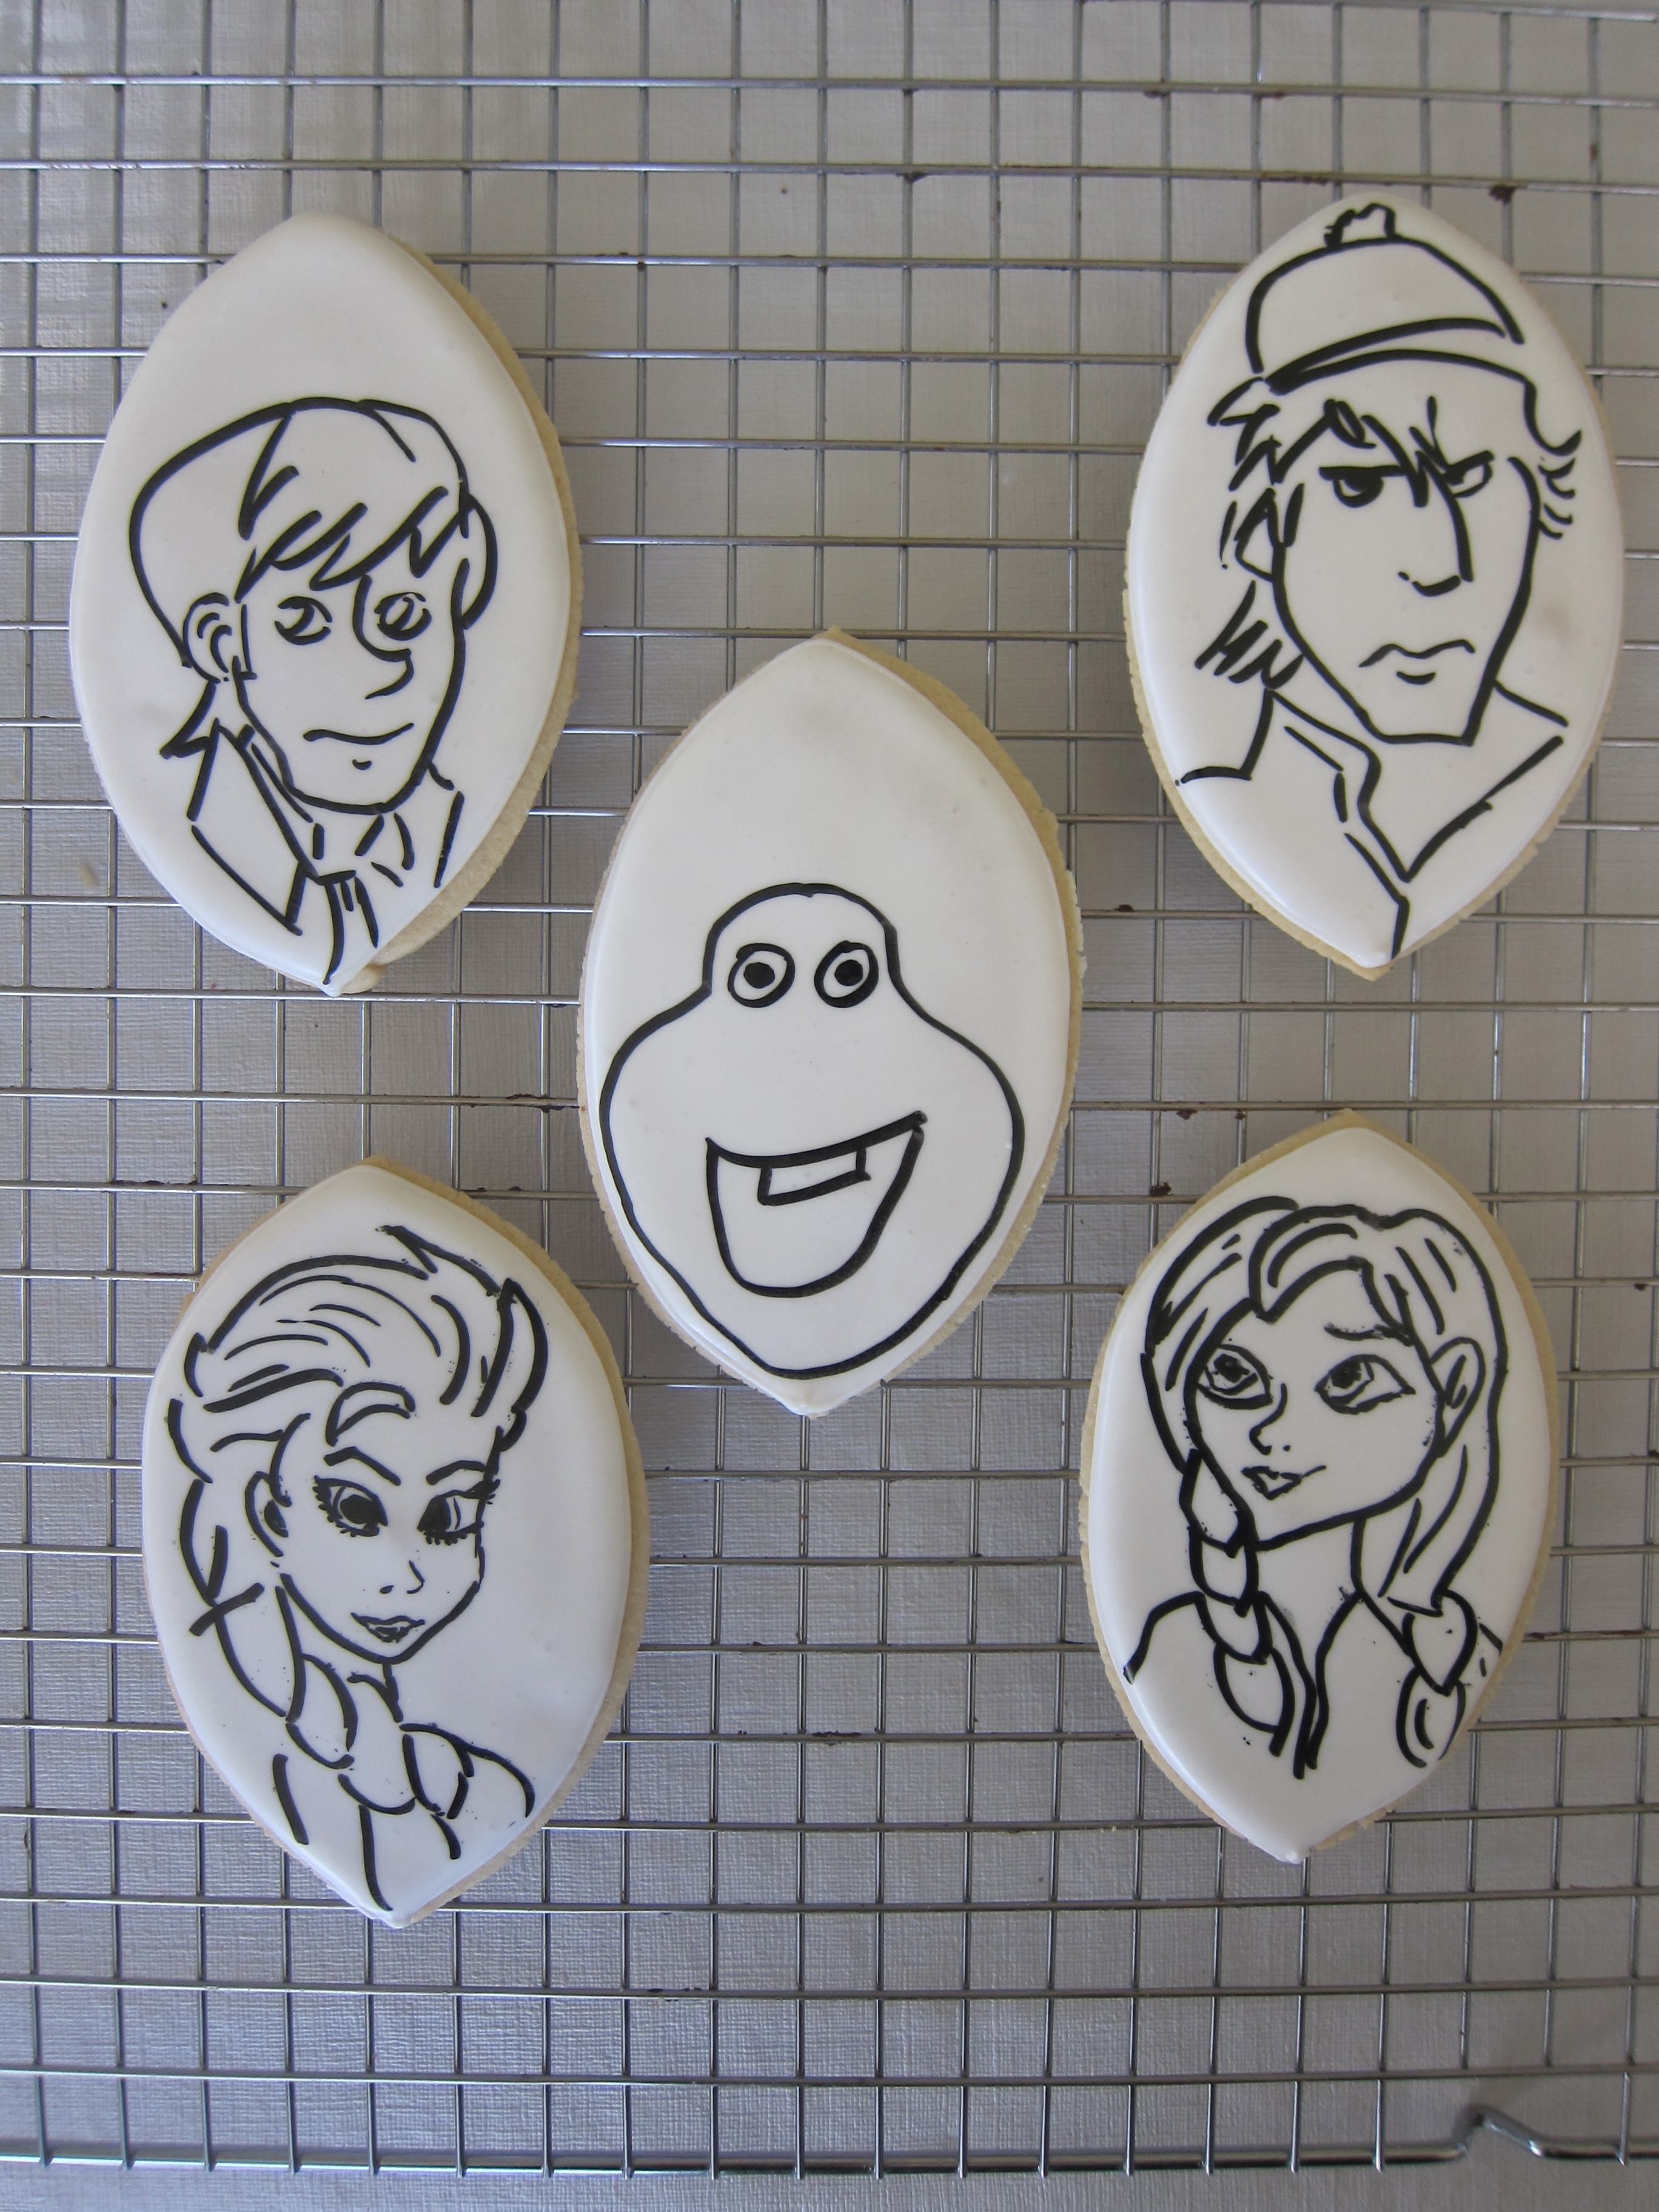 hand drawn faces of the characters, with black edible ink marker